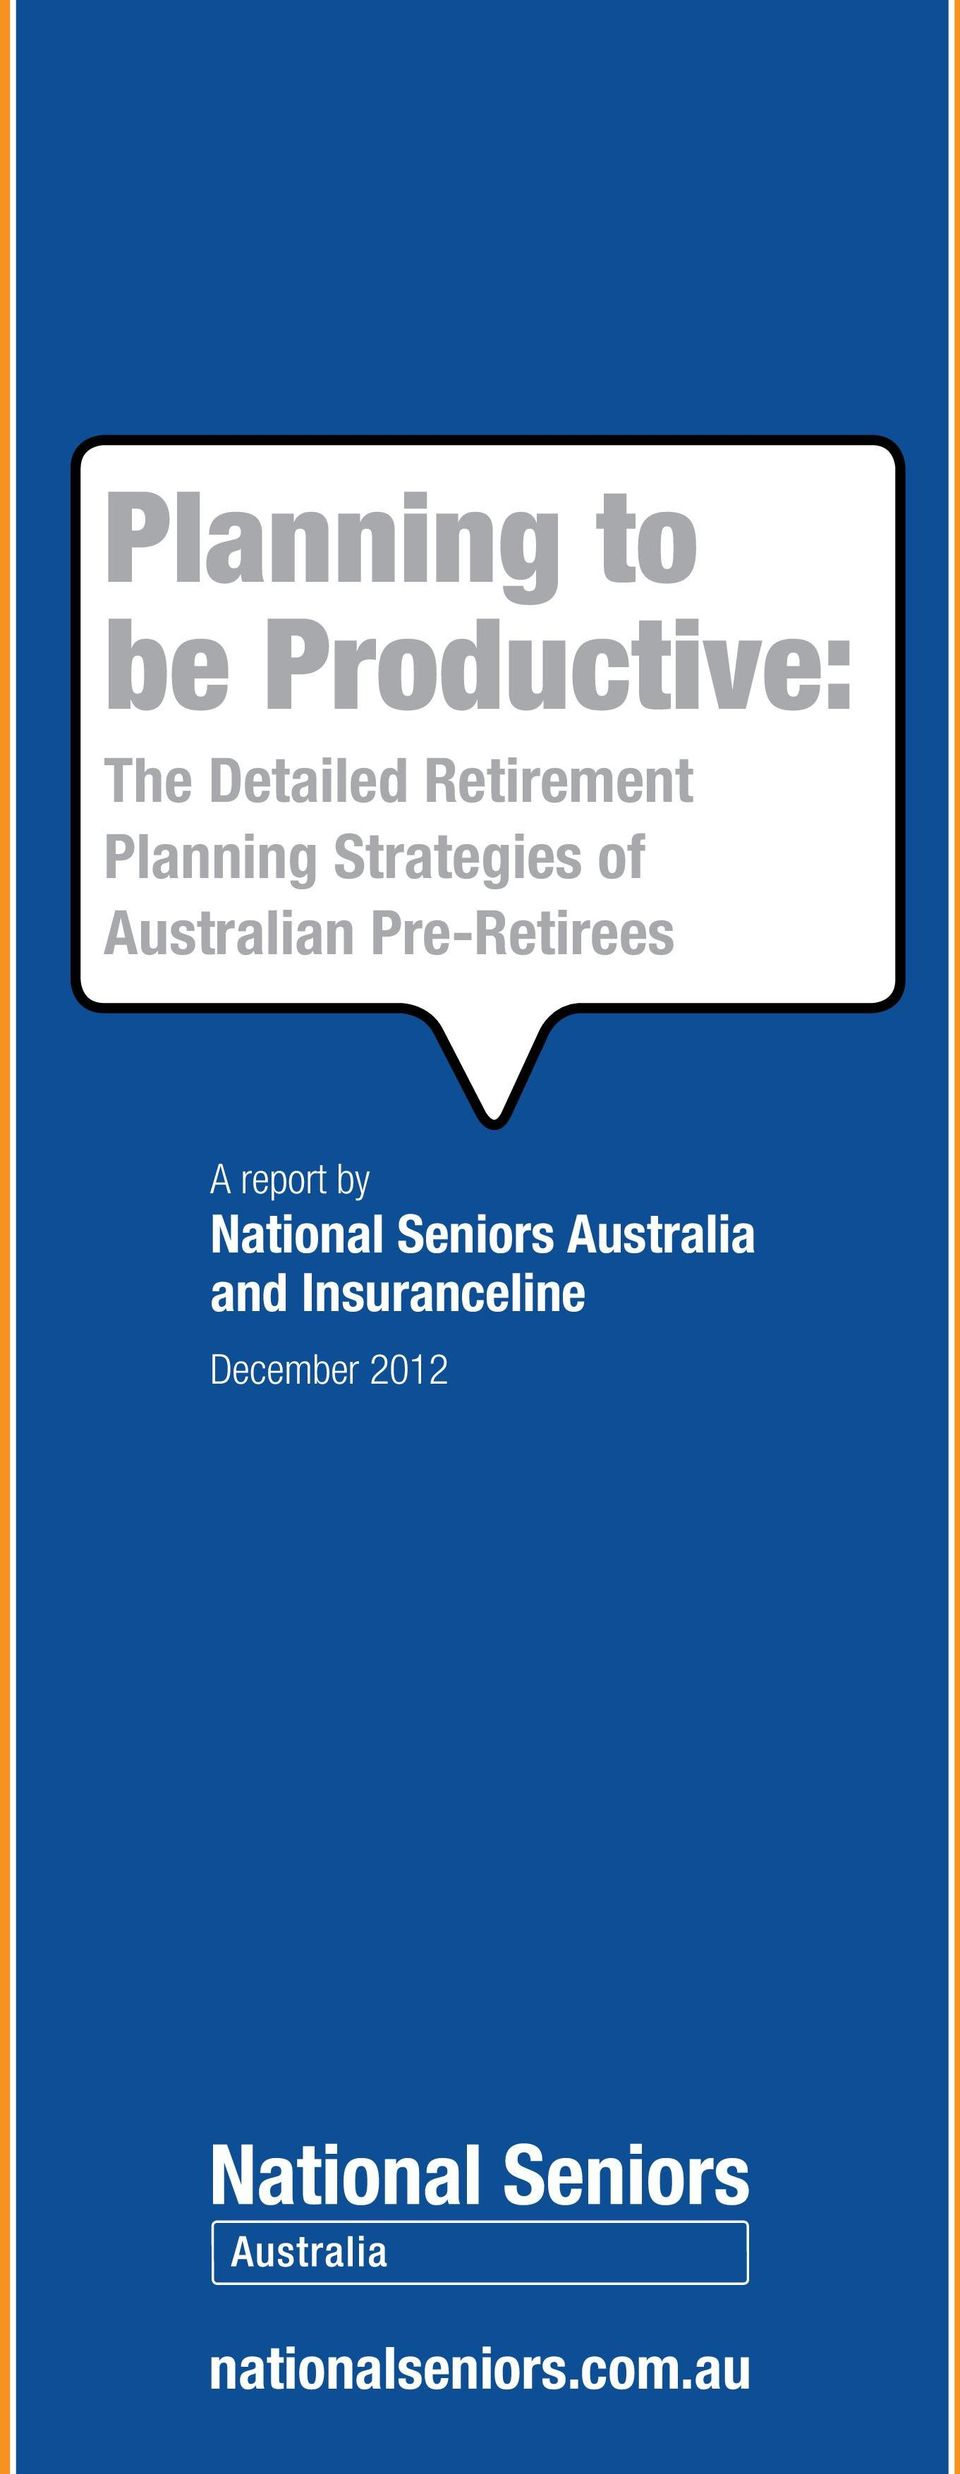 Australian Pre-Retirees A report by and